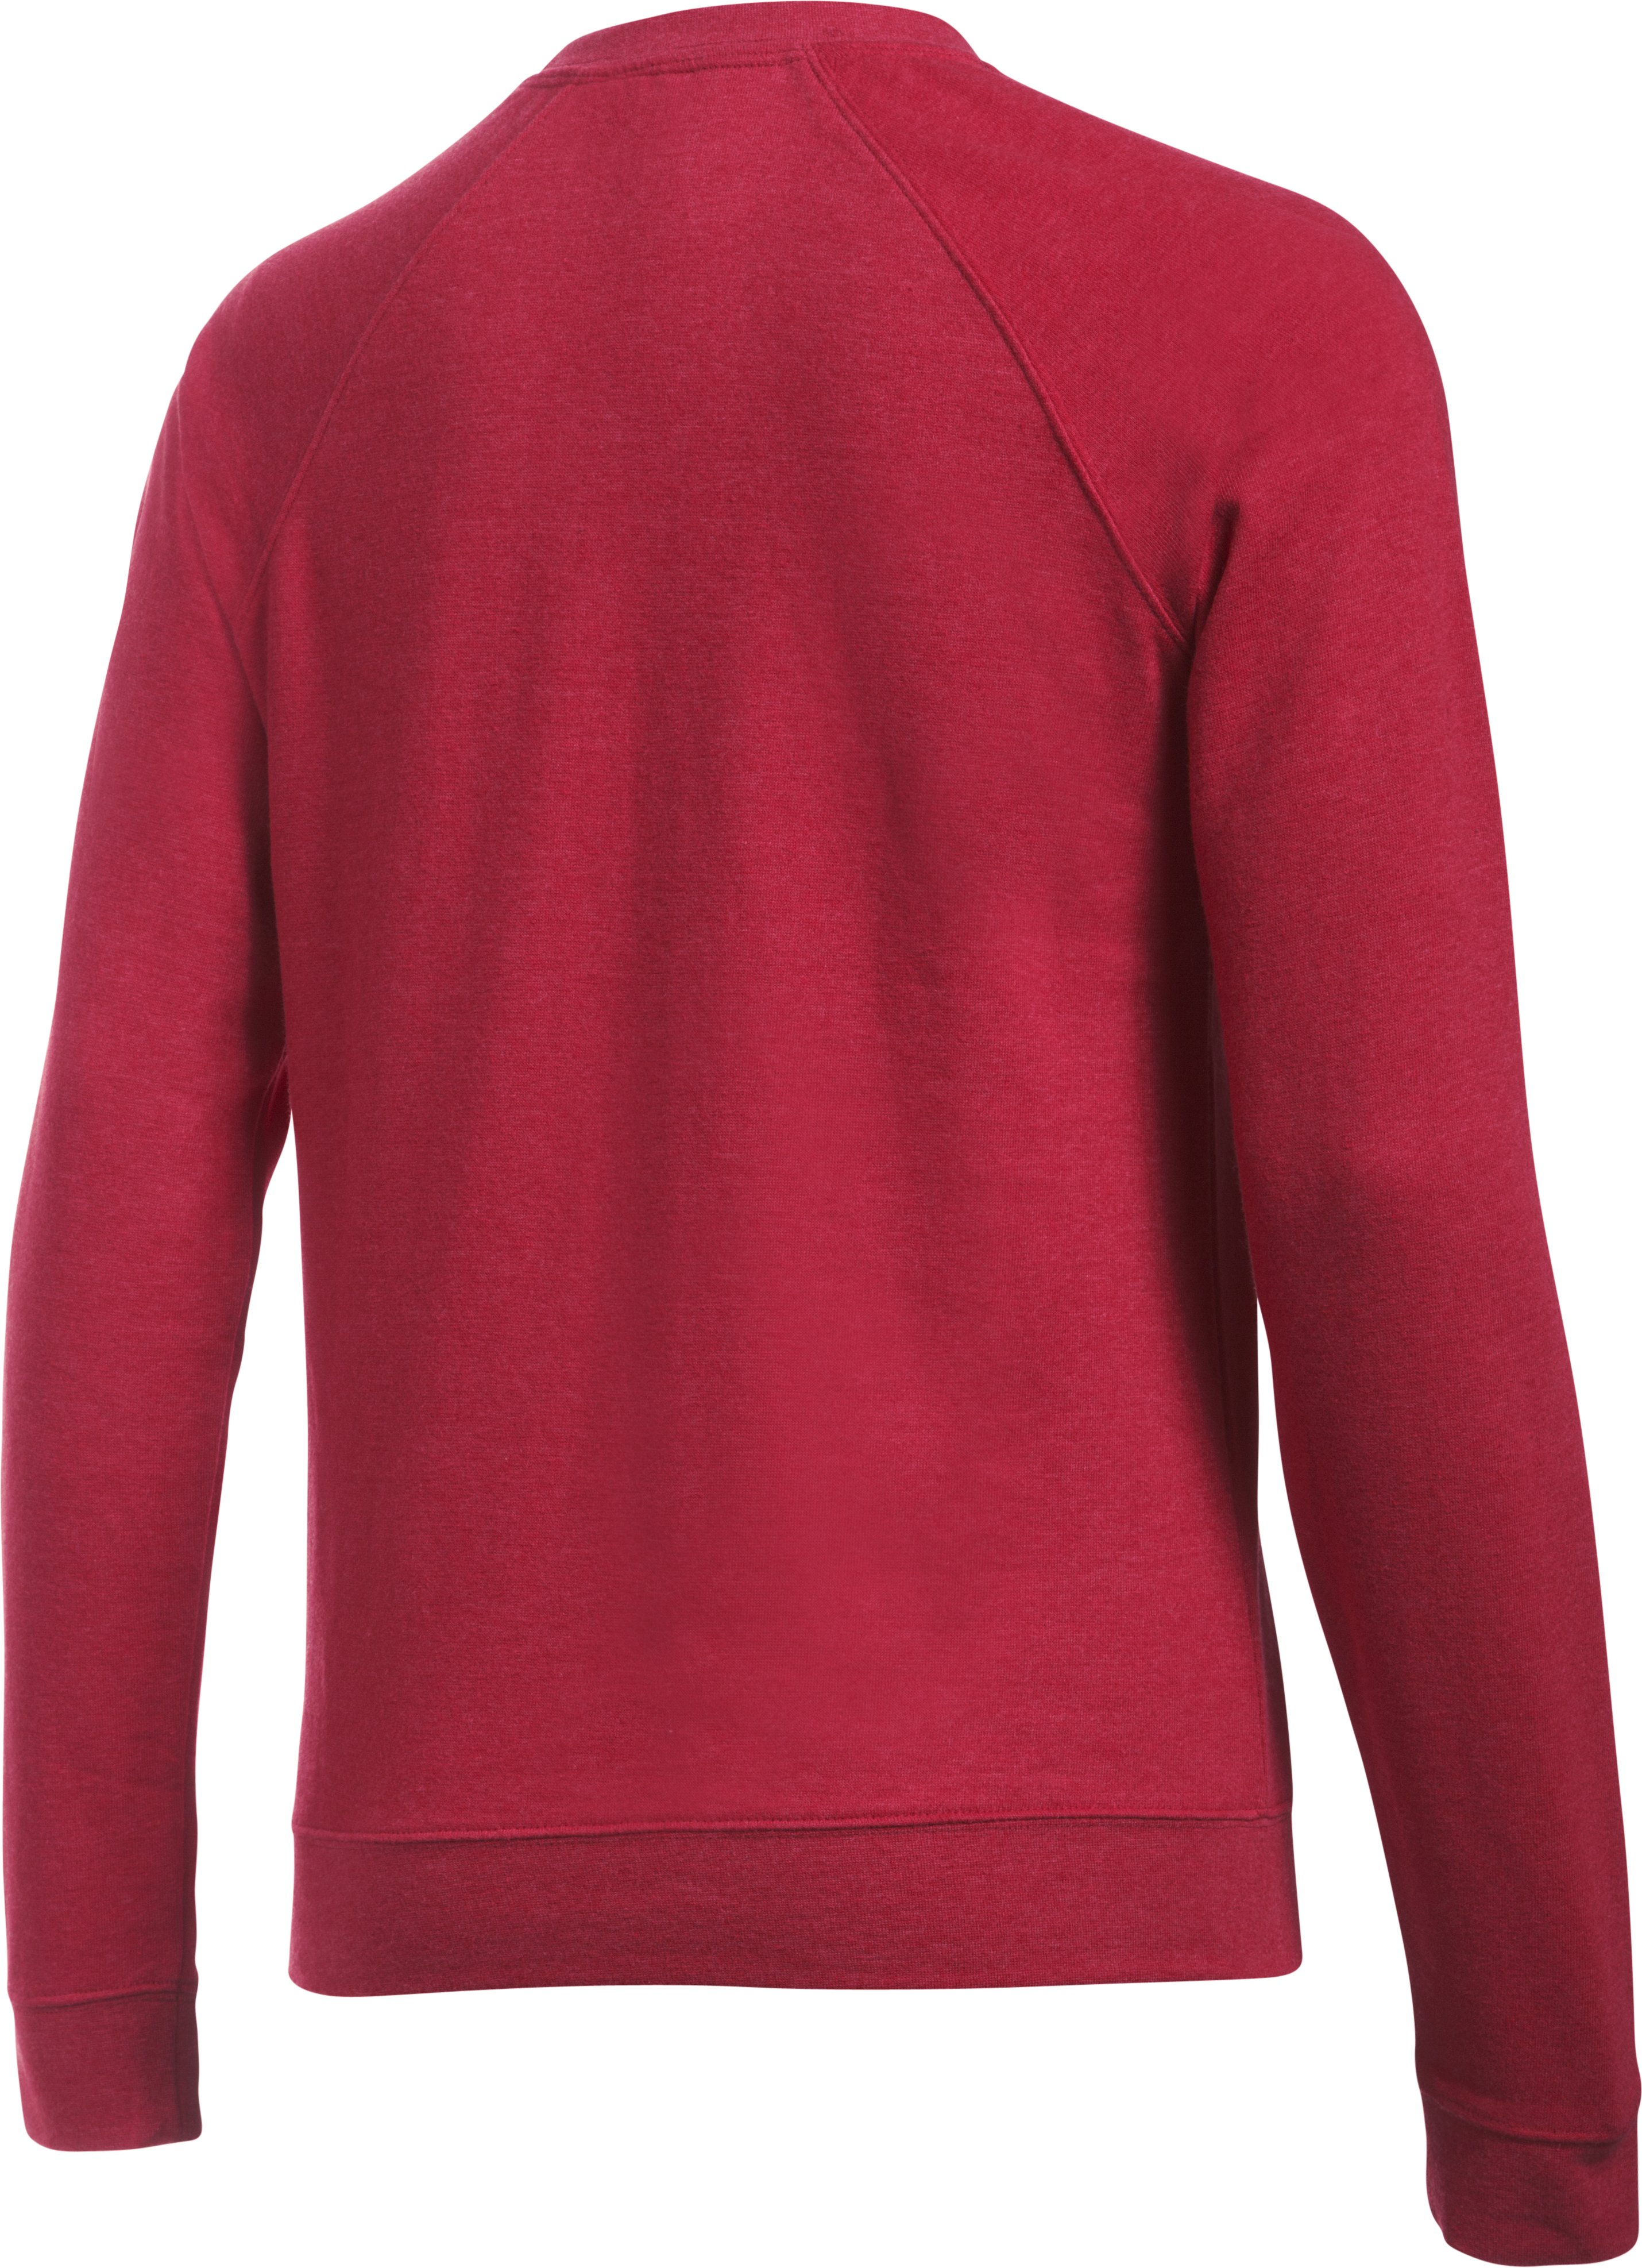 Women's Wisconsin Iconic Crew Sweatshirt, Red,